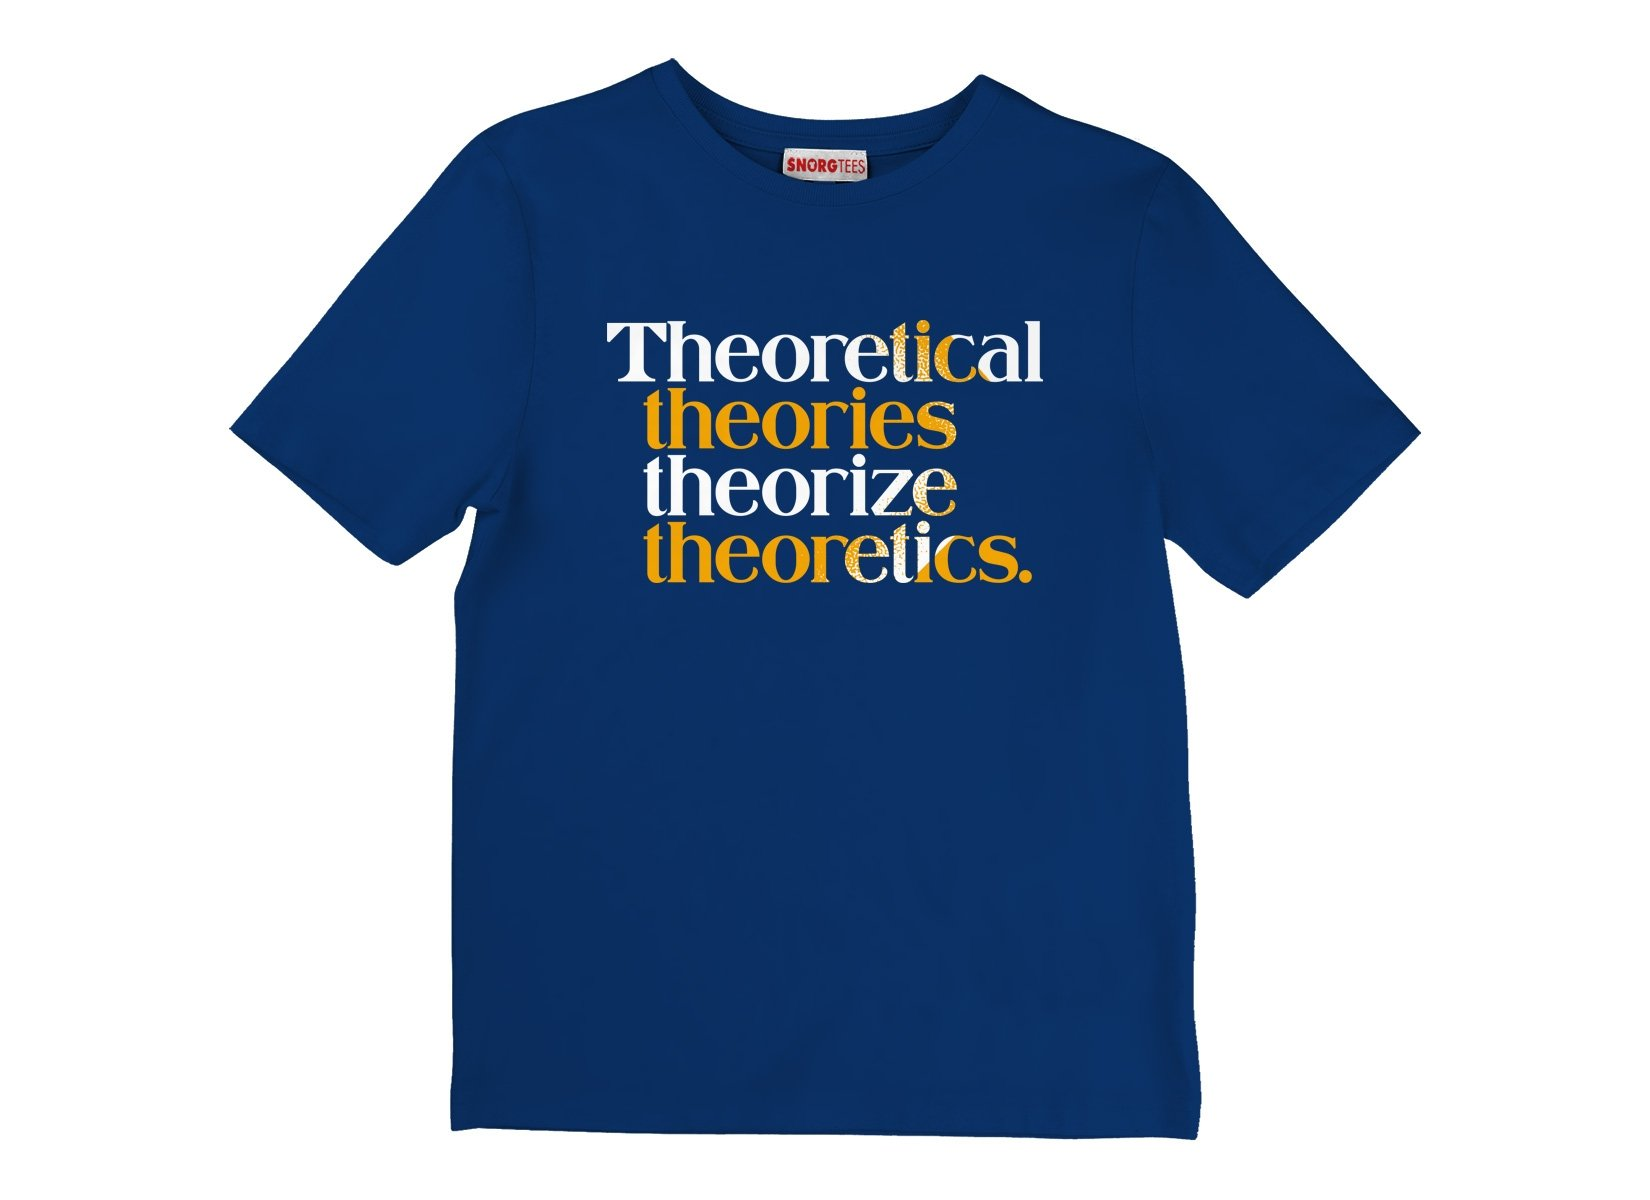 Theoretical Theories Theorize Theoretics on Kids T-Shirt